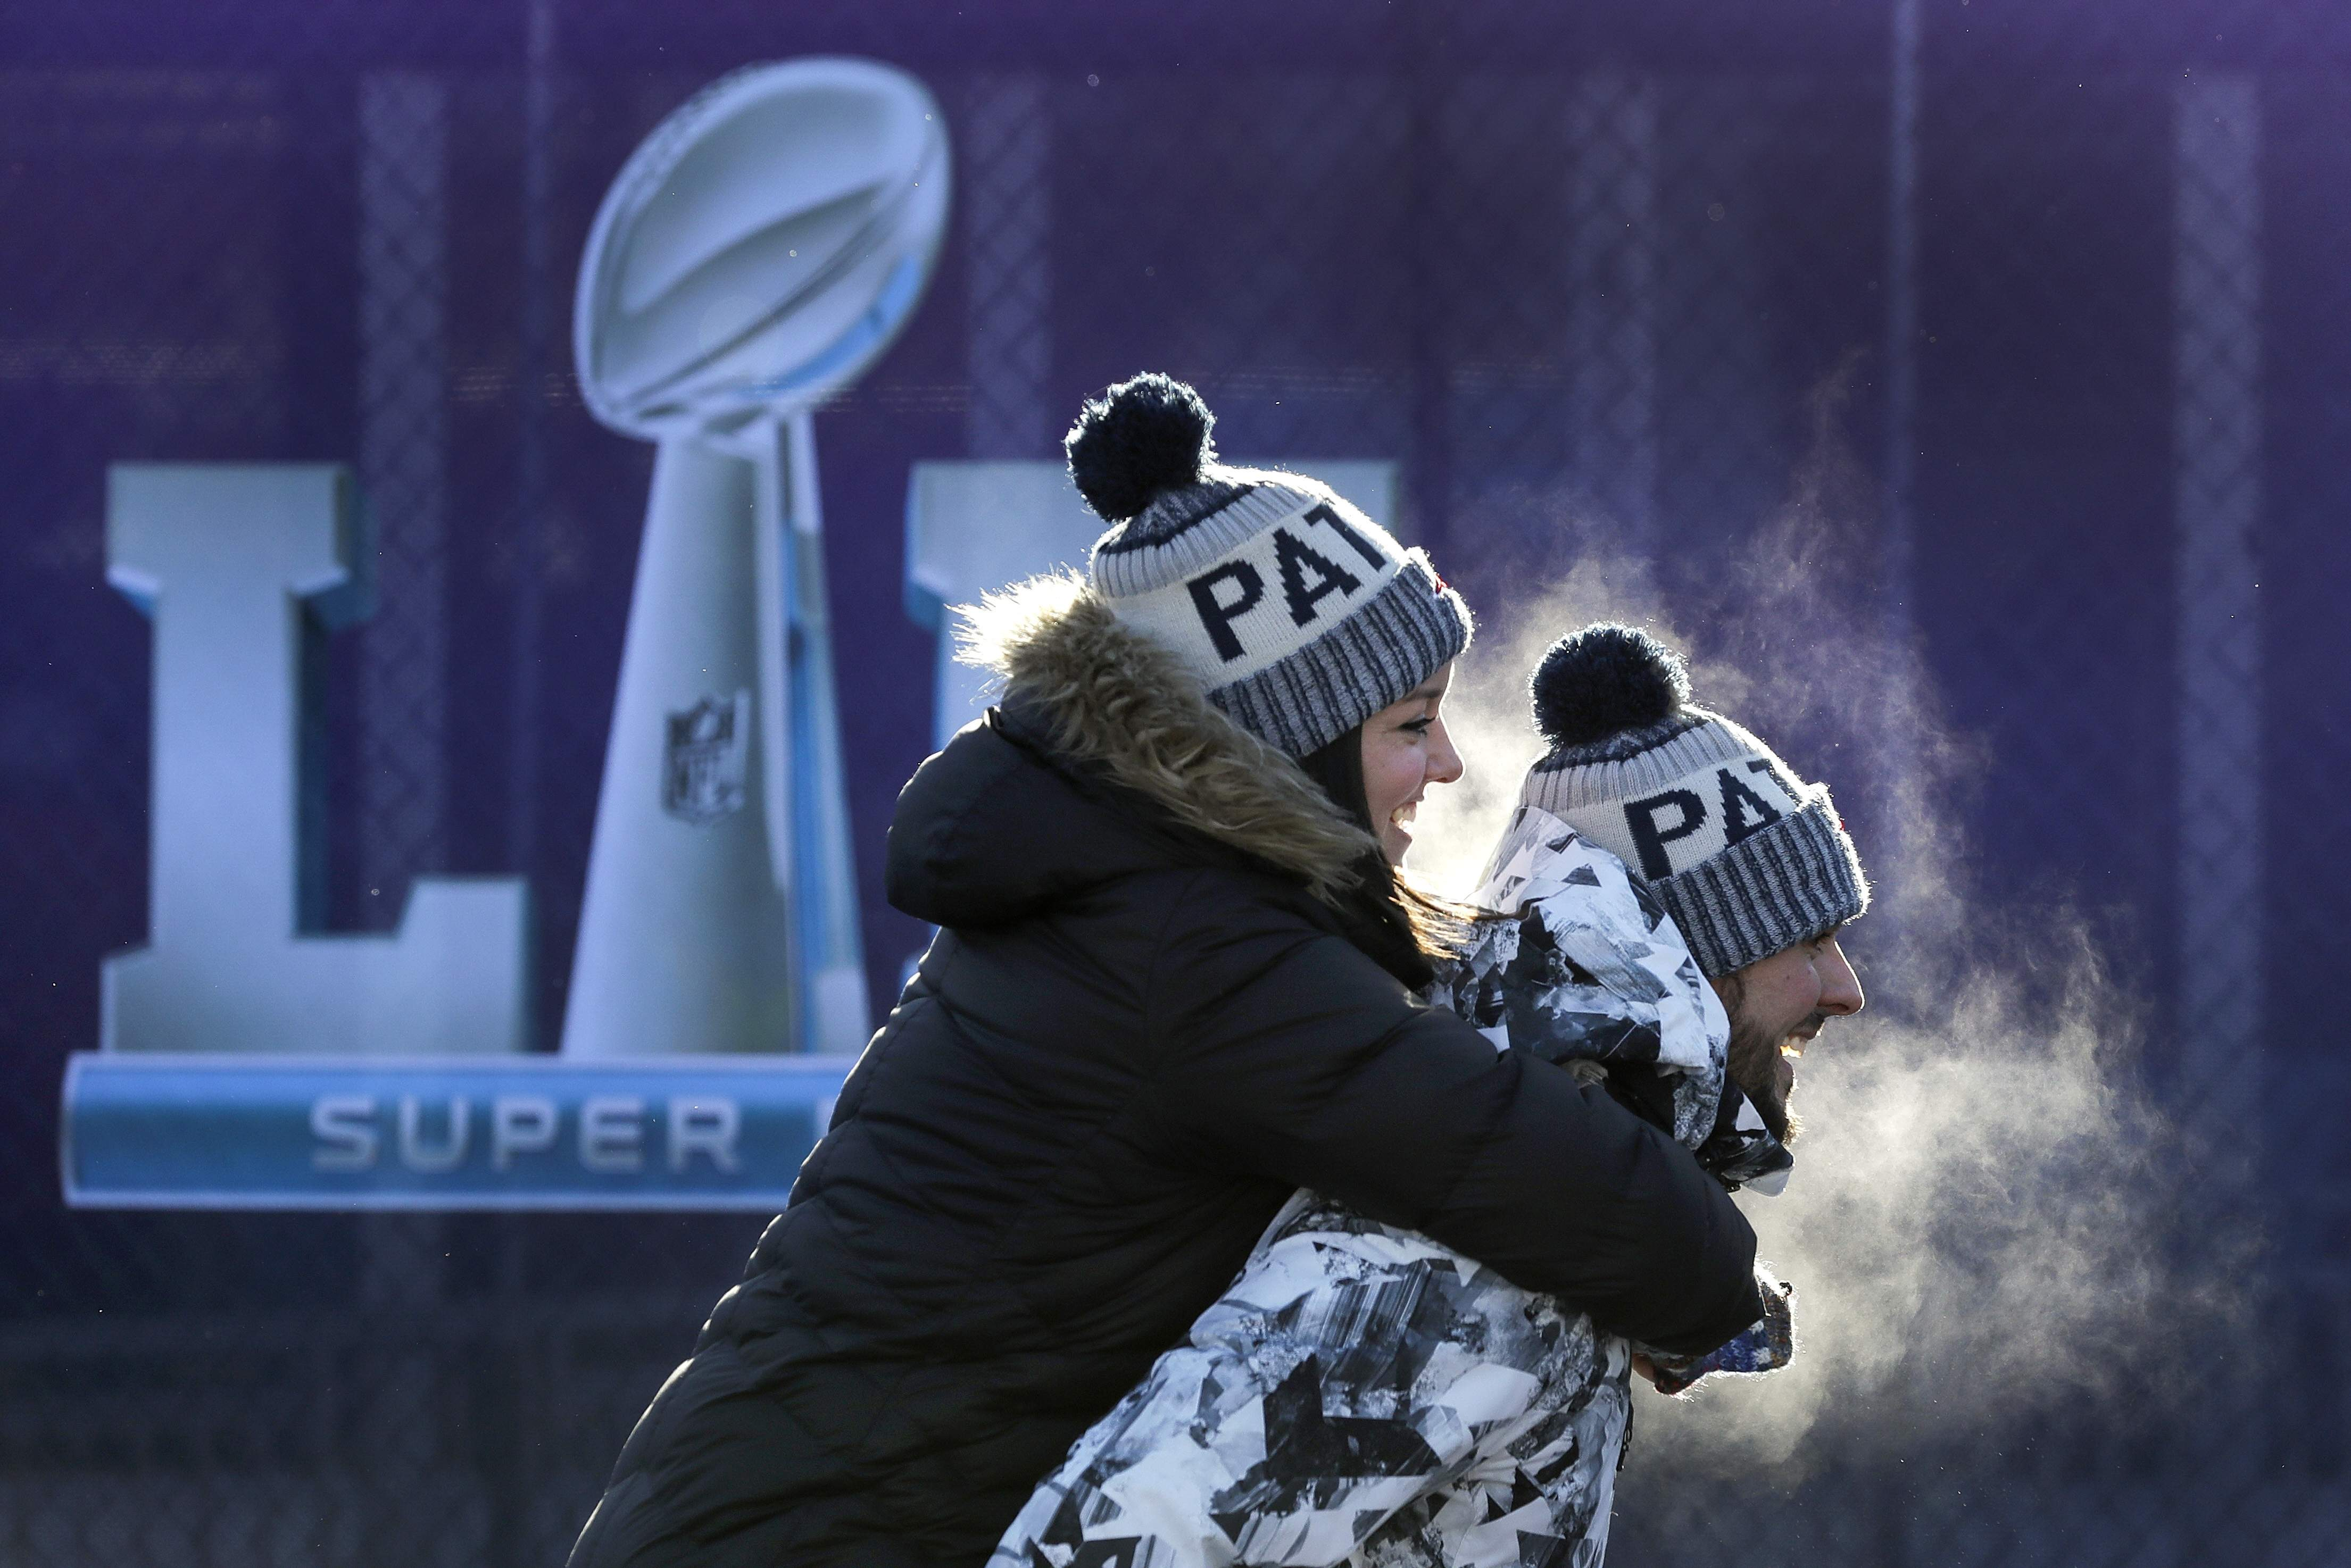 Fans brave cold temperatures as they make their way to U.S. Bank Stadium for the NFL Super Bowl 52 football game between the Philadelphia Eagles and the New England Patriots Sunday, Feb. 4, 2018, in Minneapolis. (AP Photo/Eric Gay)